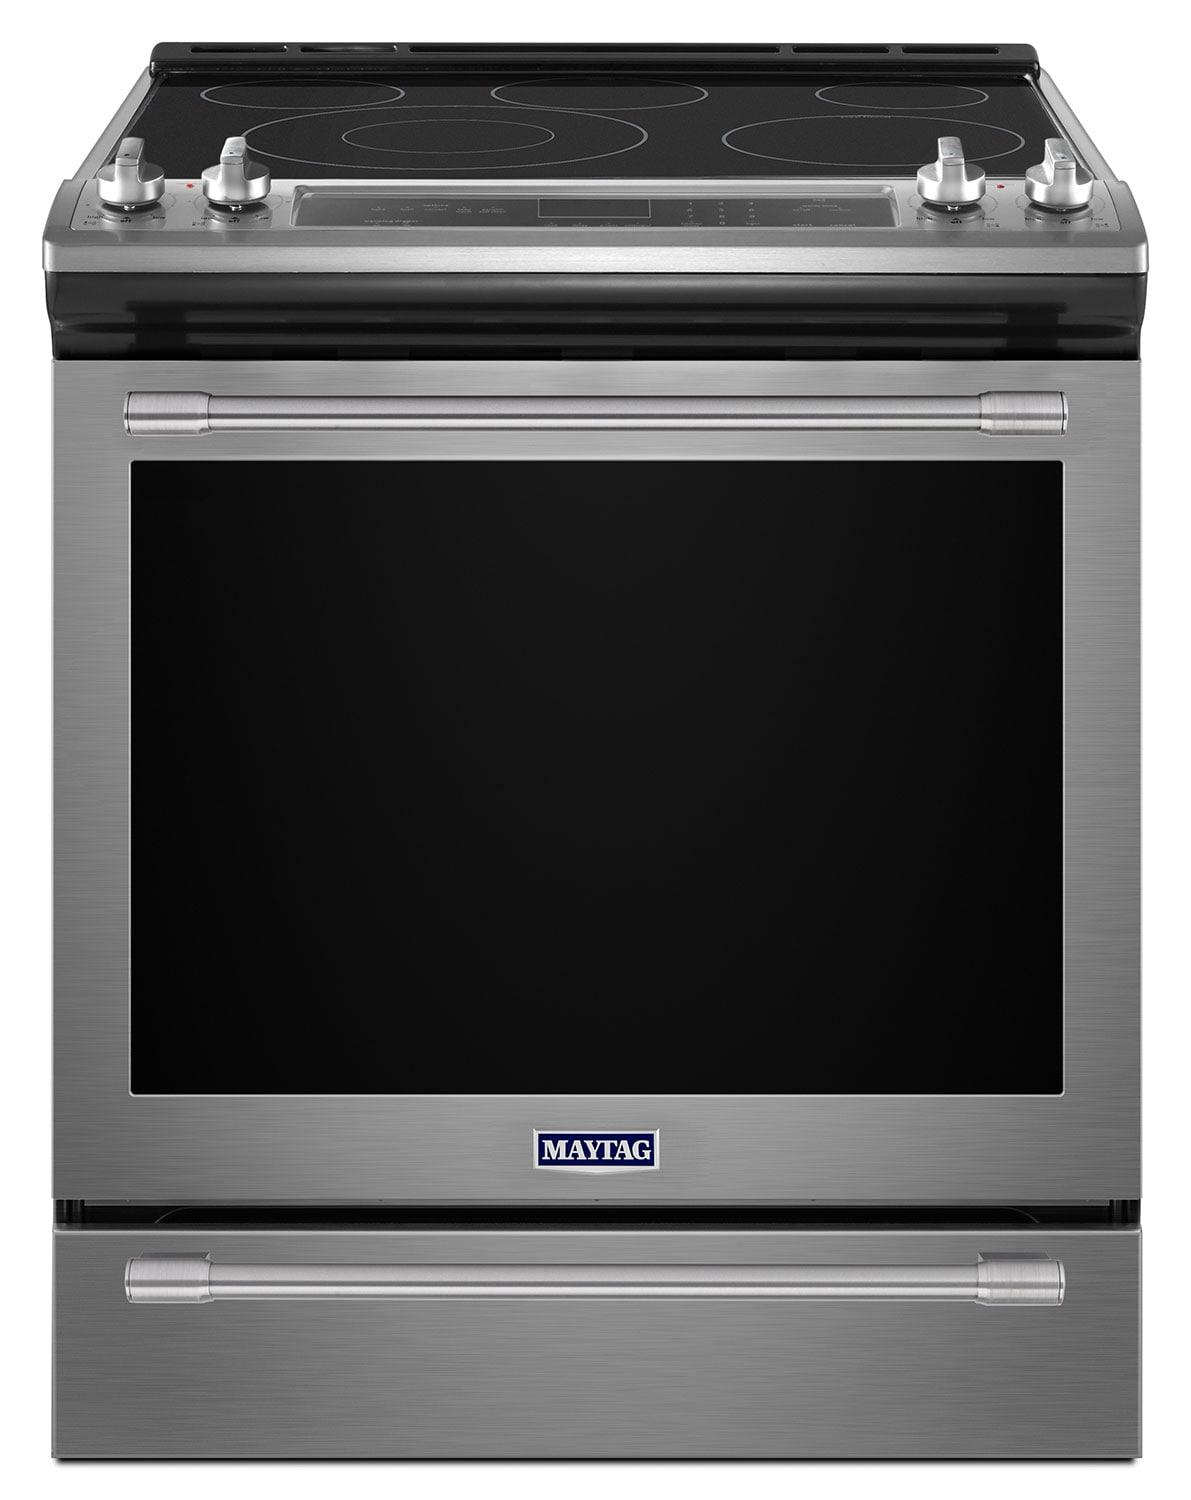 Cooking Products - Maytag Stainless Steel Slide-In Electric Convection Range (6.4 Cu. Ft.) - YMES8800FZ